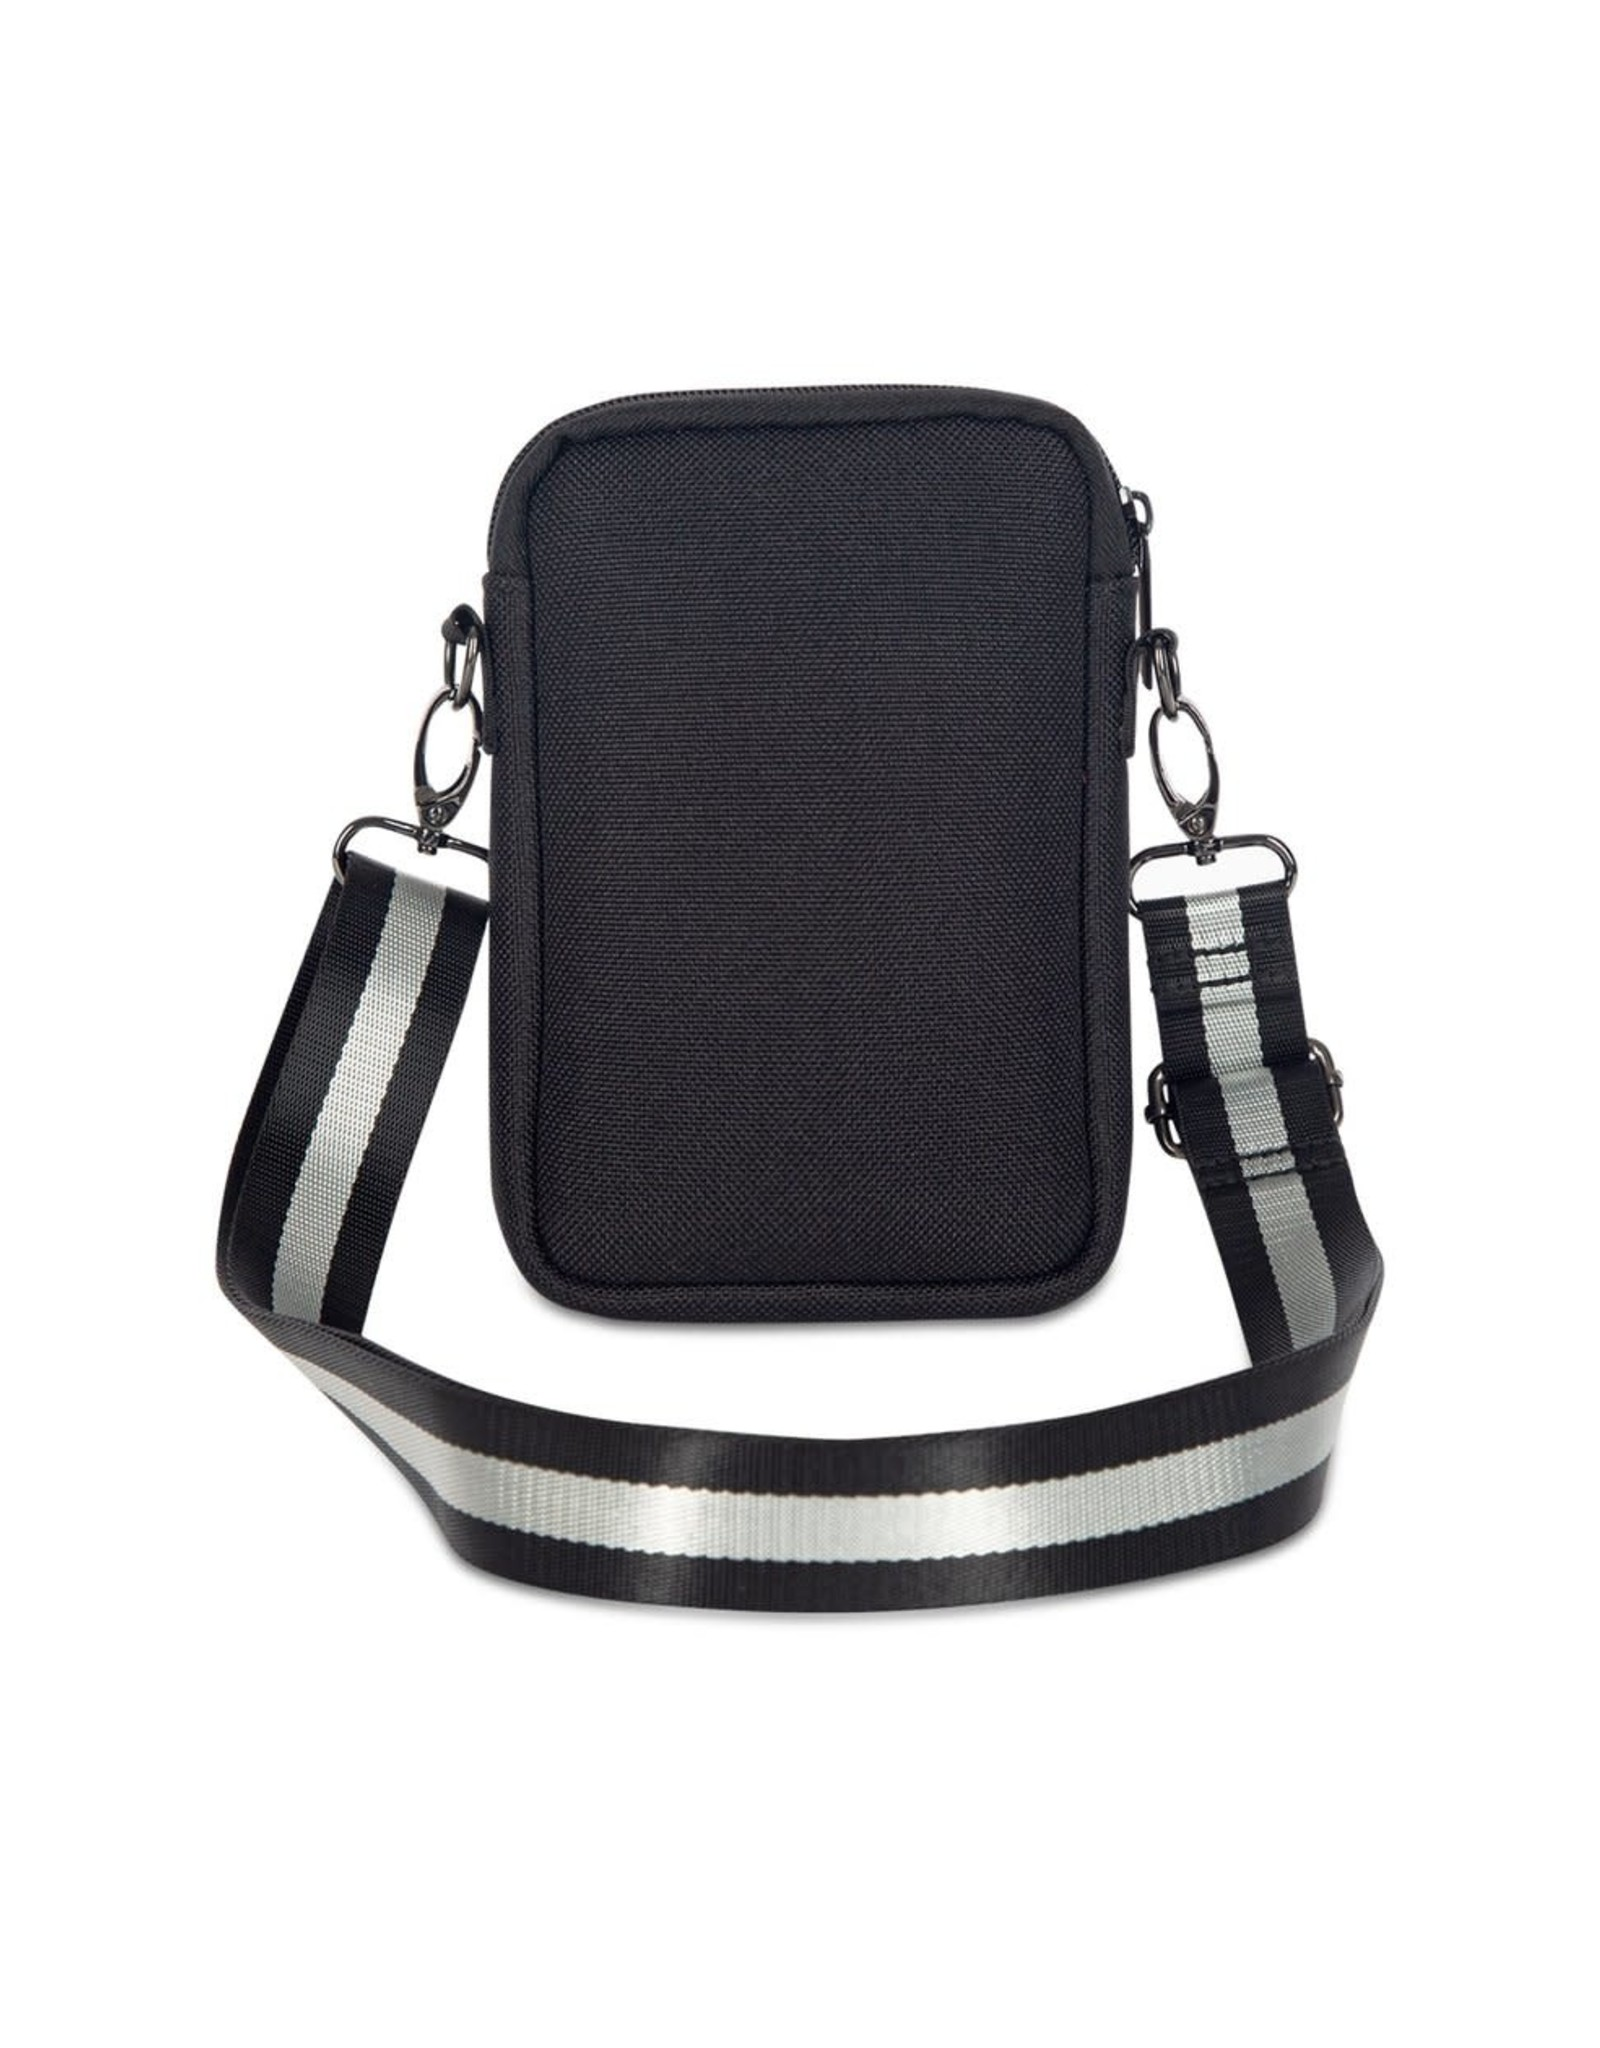 Casey Cell Phone Bag Twist Black/White